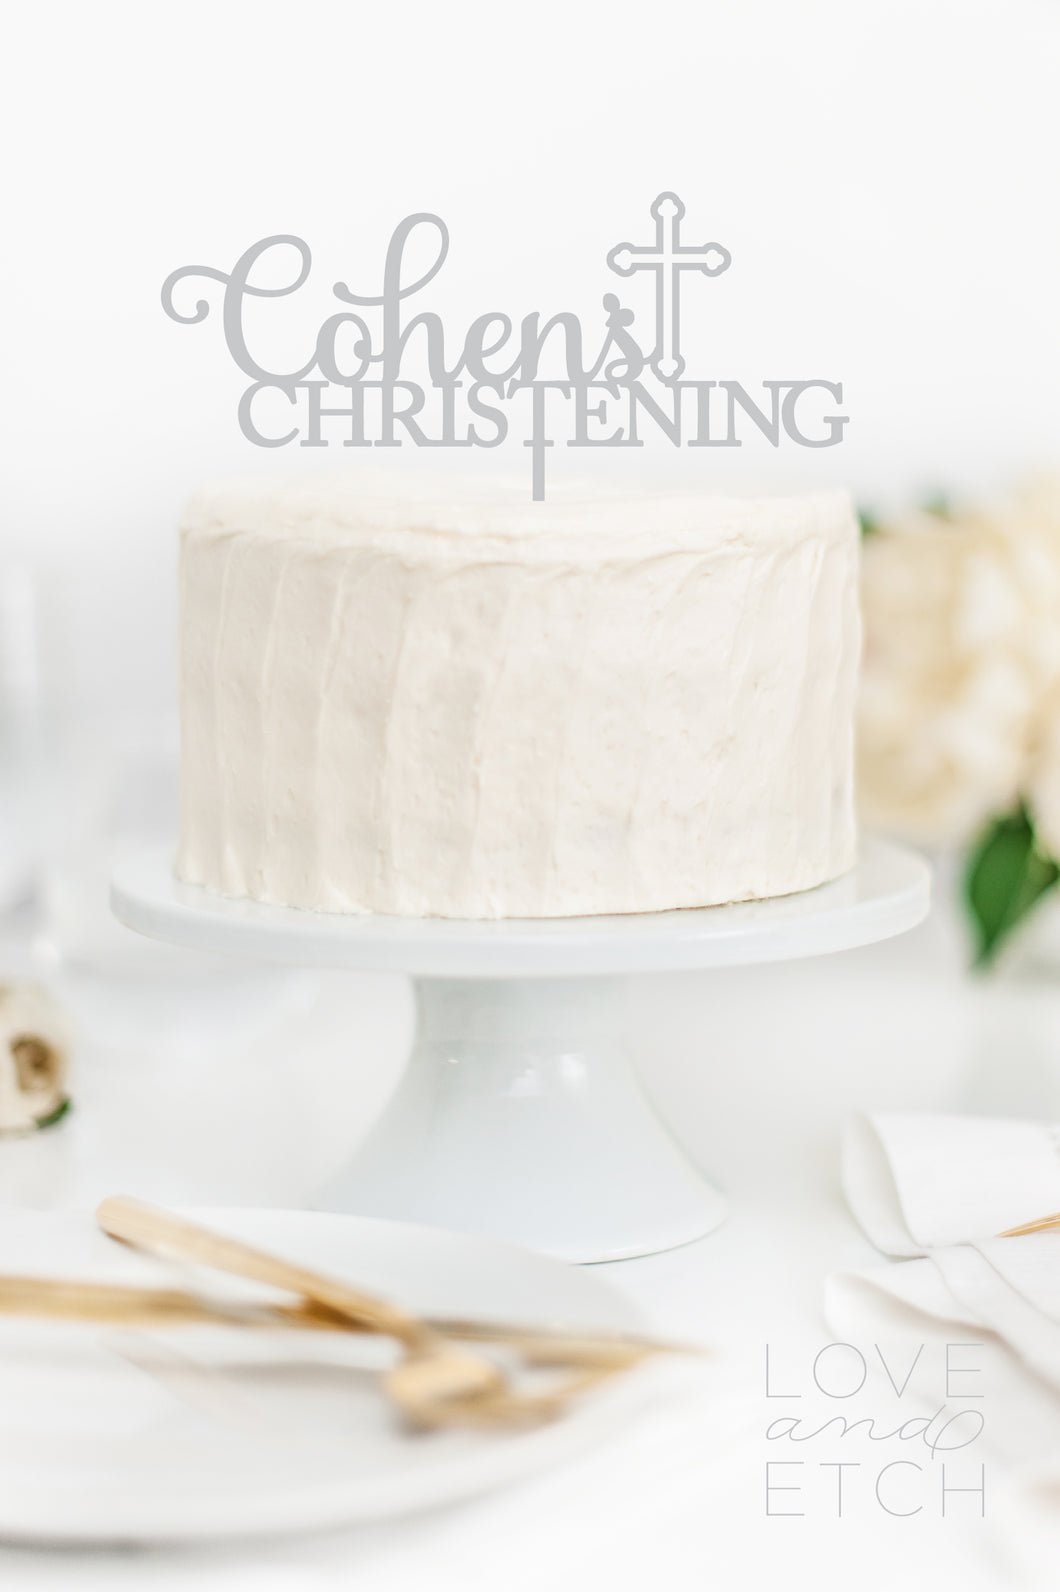 CUSTOM NAME CHRISTENING - CAKE TOPPER